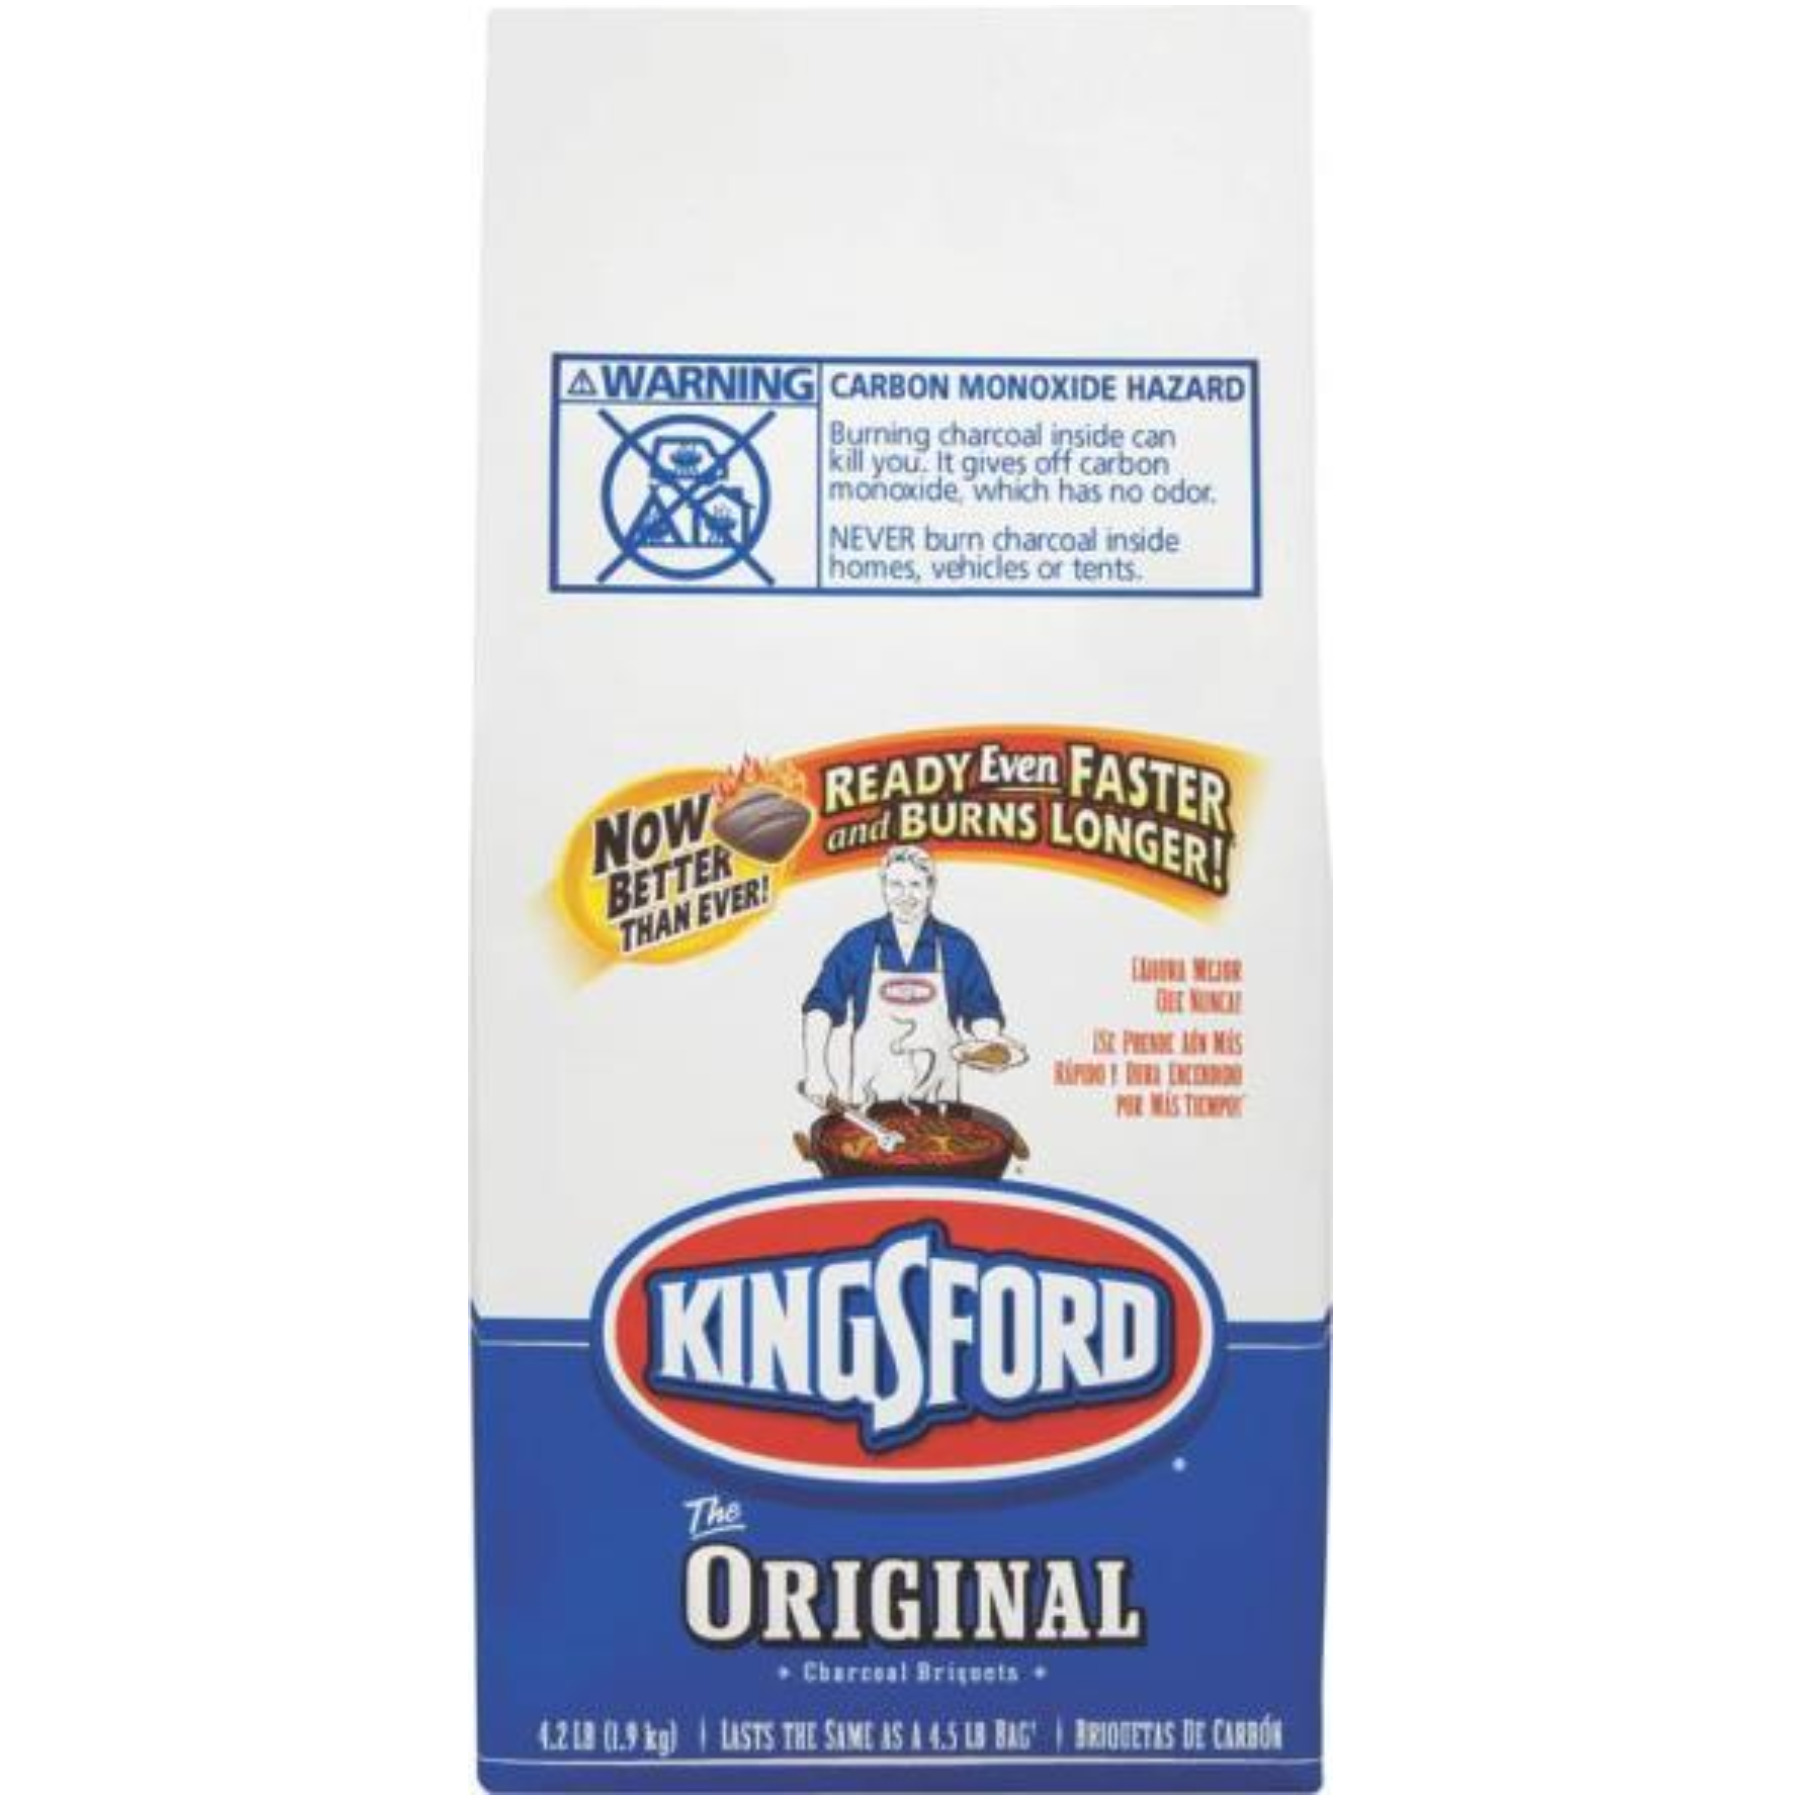 Kingsford 31186 Charcoal Briquette, 4.5 lb Bag, Black, Solid